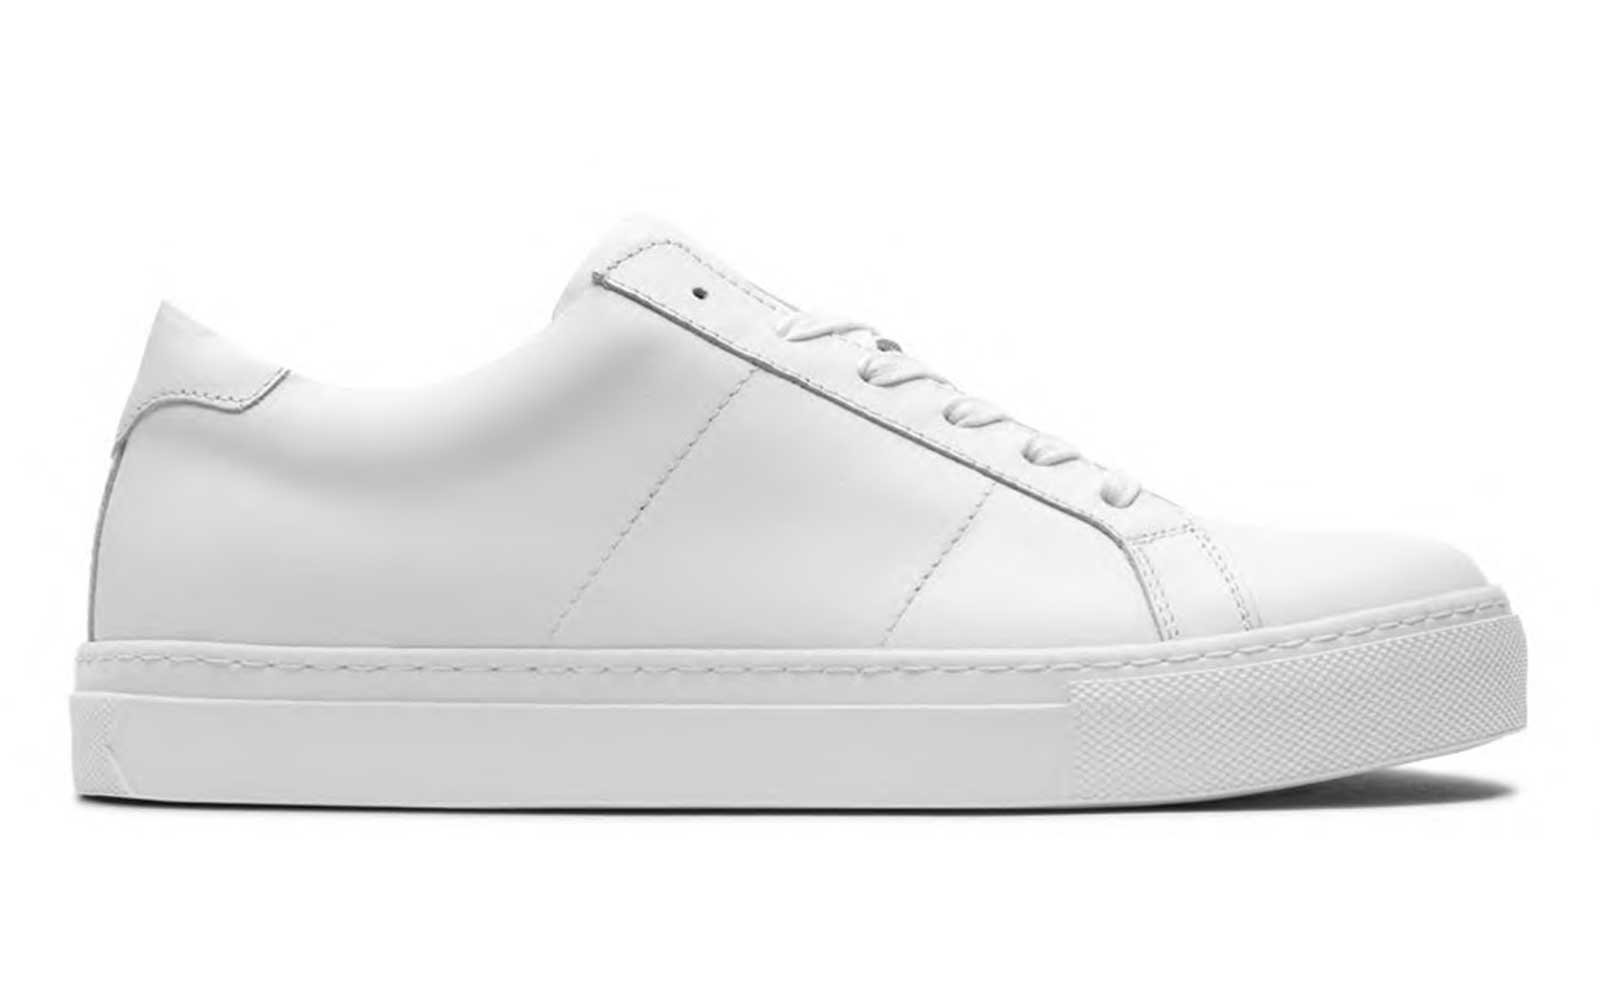 outlet store a0436 f1eb2 Greats Women s Royale Leather Low-top Sneakers